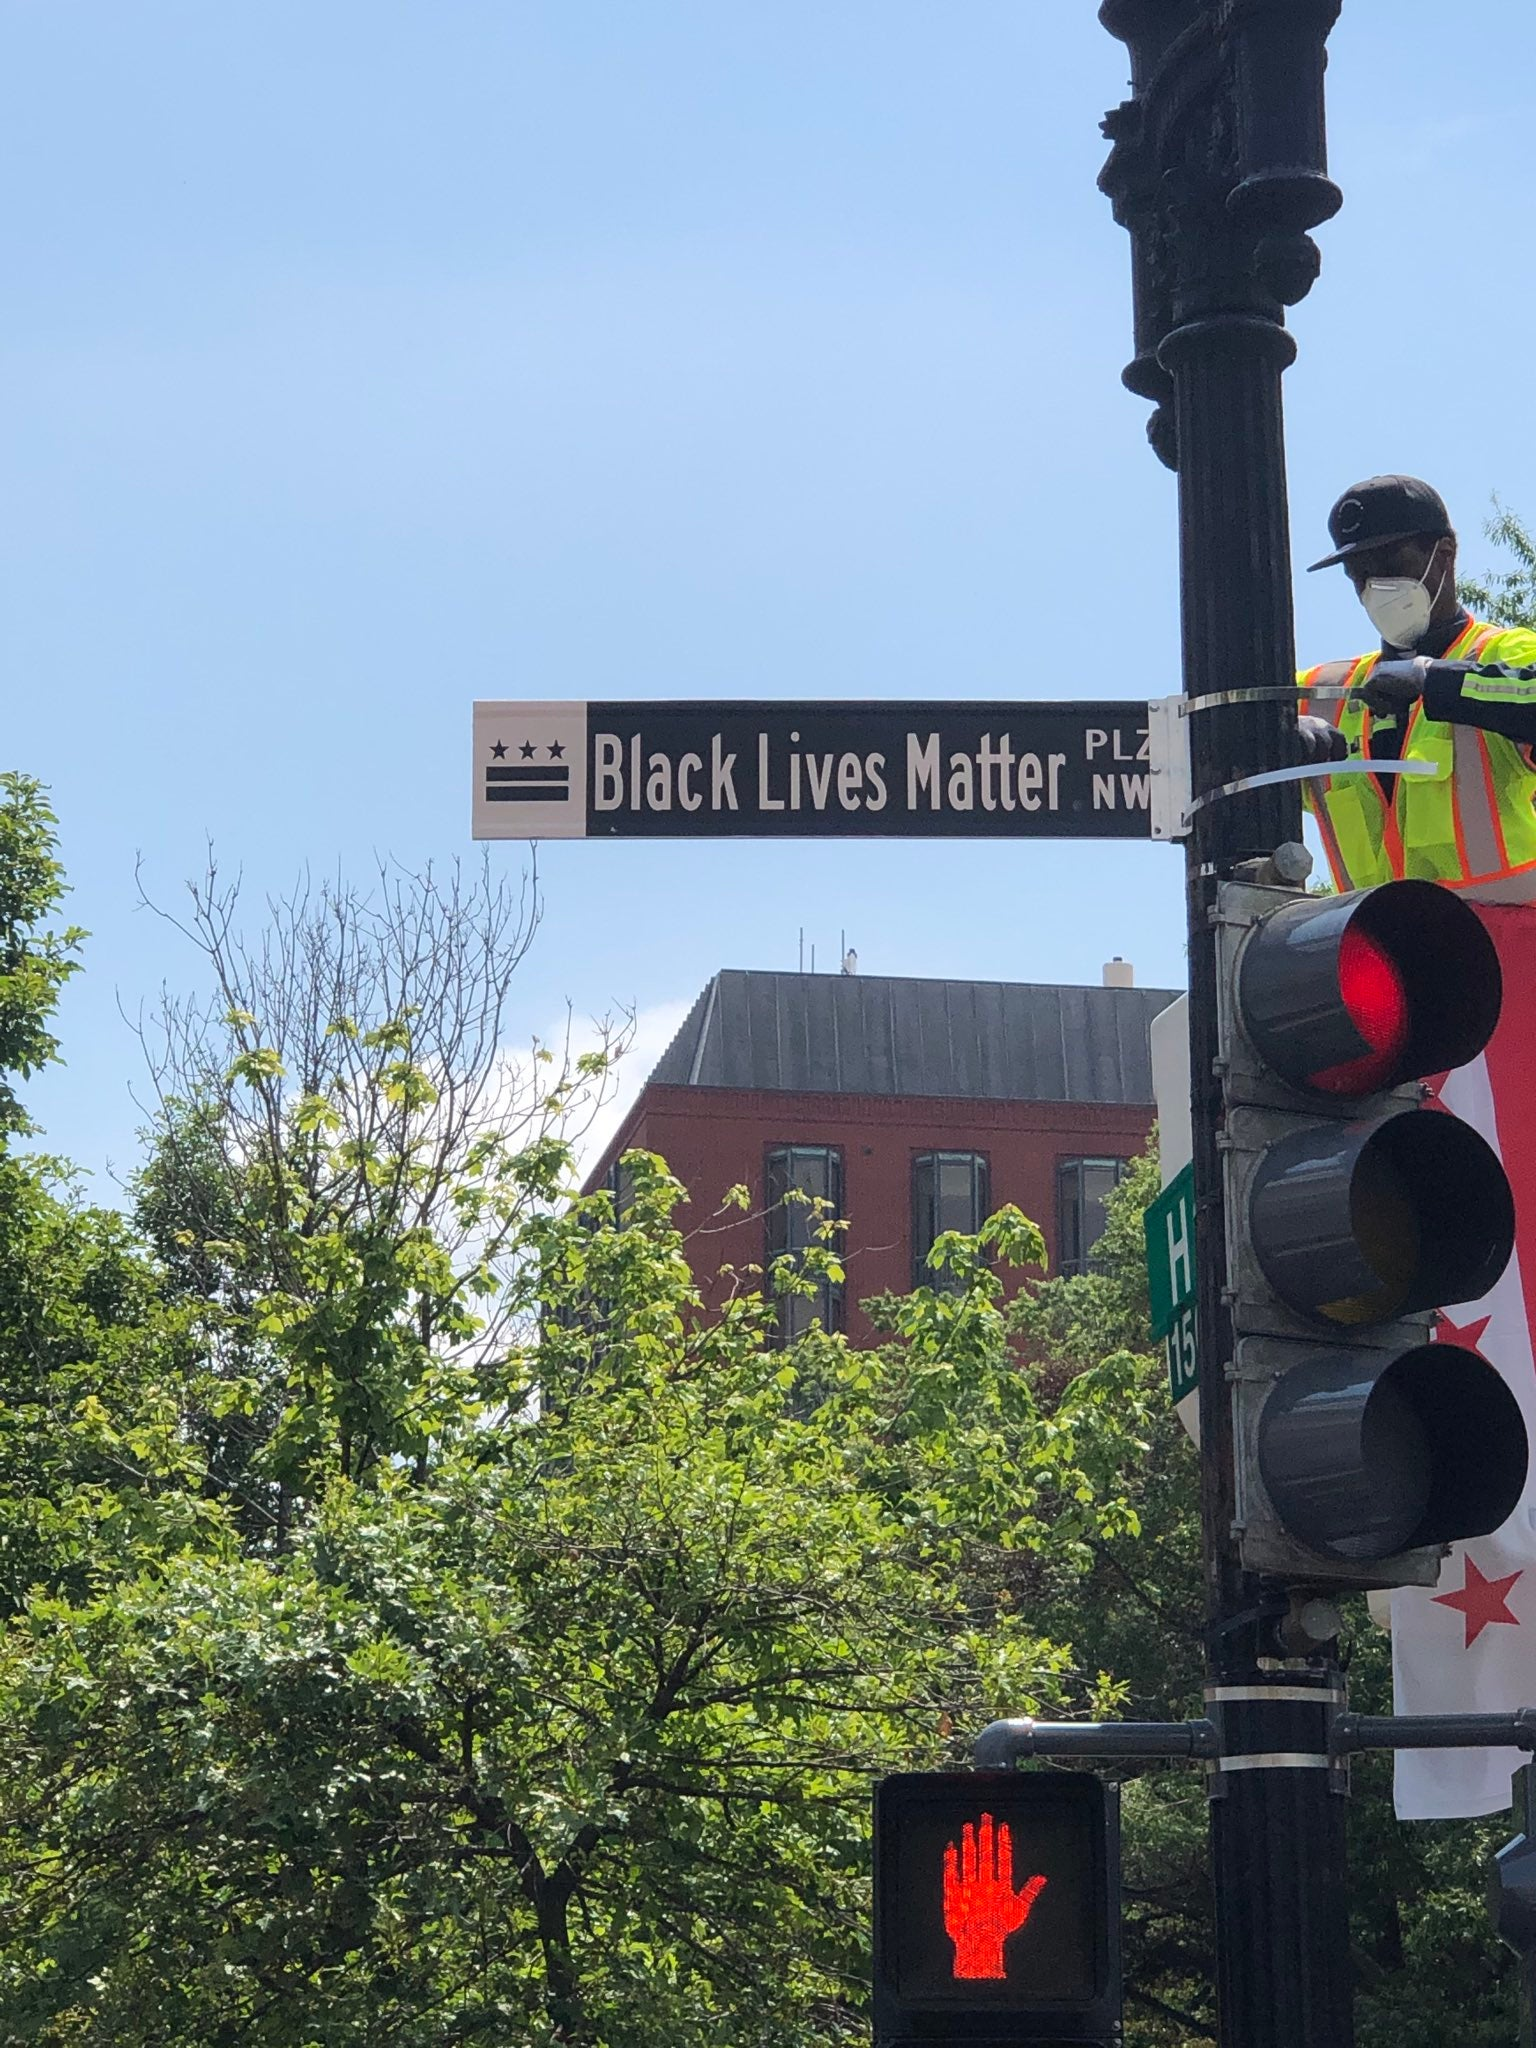 Black Lives Matter Plaza renamed by Mayor Muriel Bowser